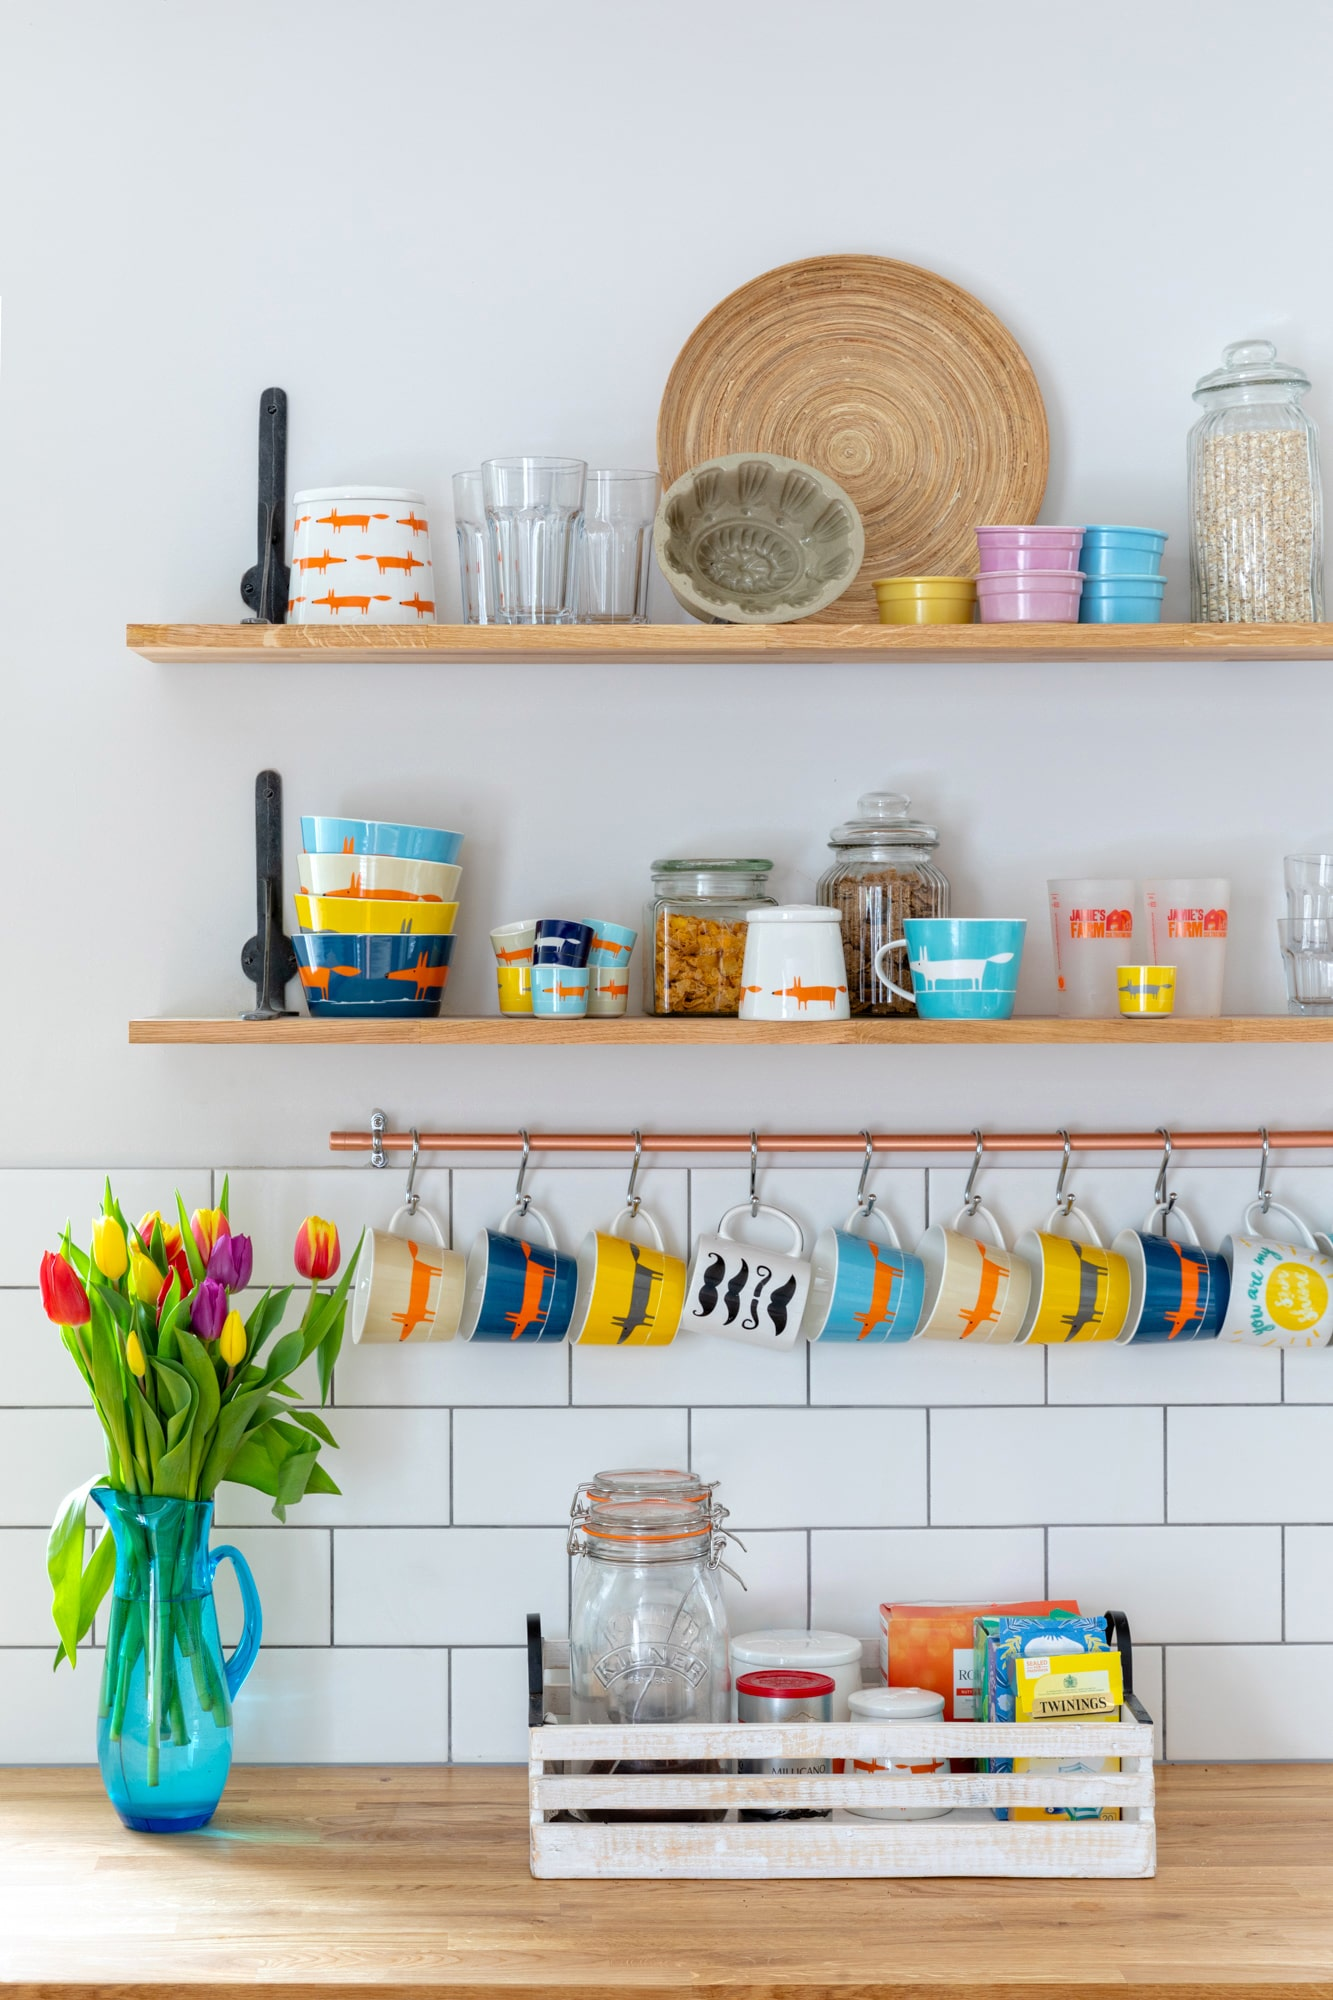 Interior detail shot: kitchen in the farm house,  shelves with mugs , jars, vase with tulips